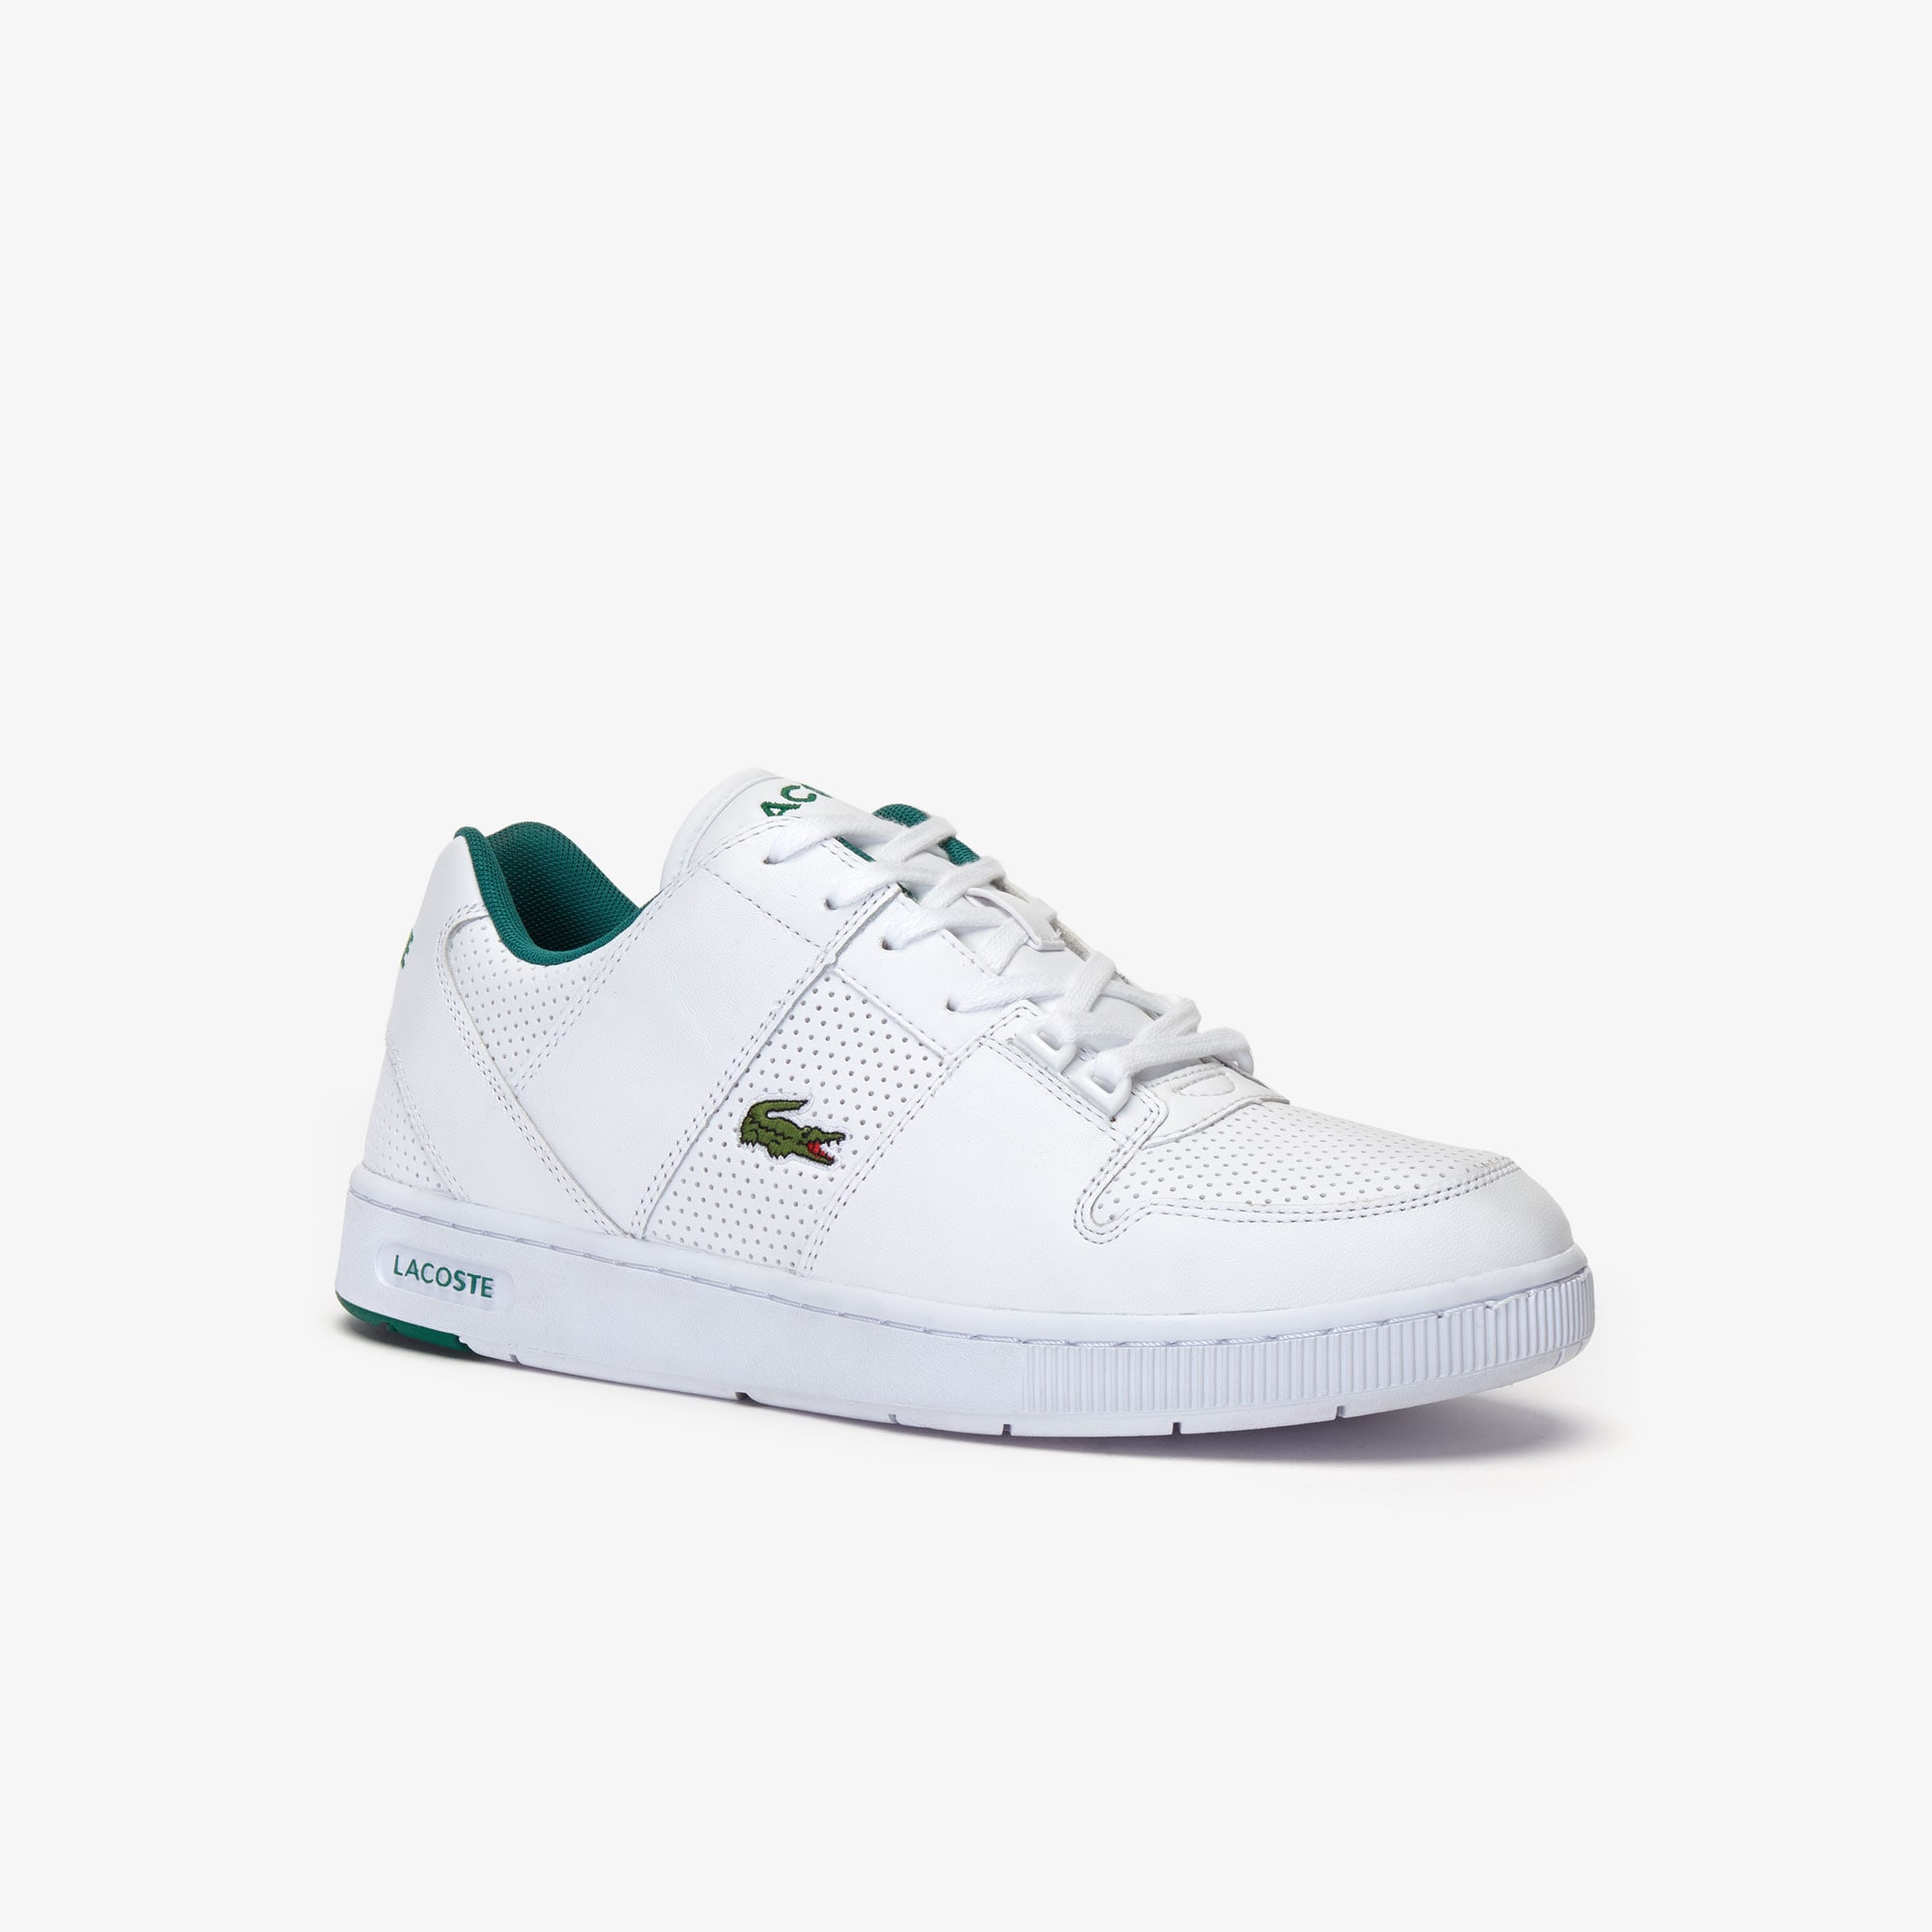 Winter Short Shoes with Shoelace Green US 5